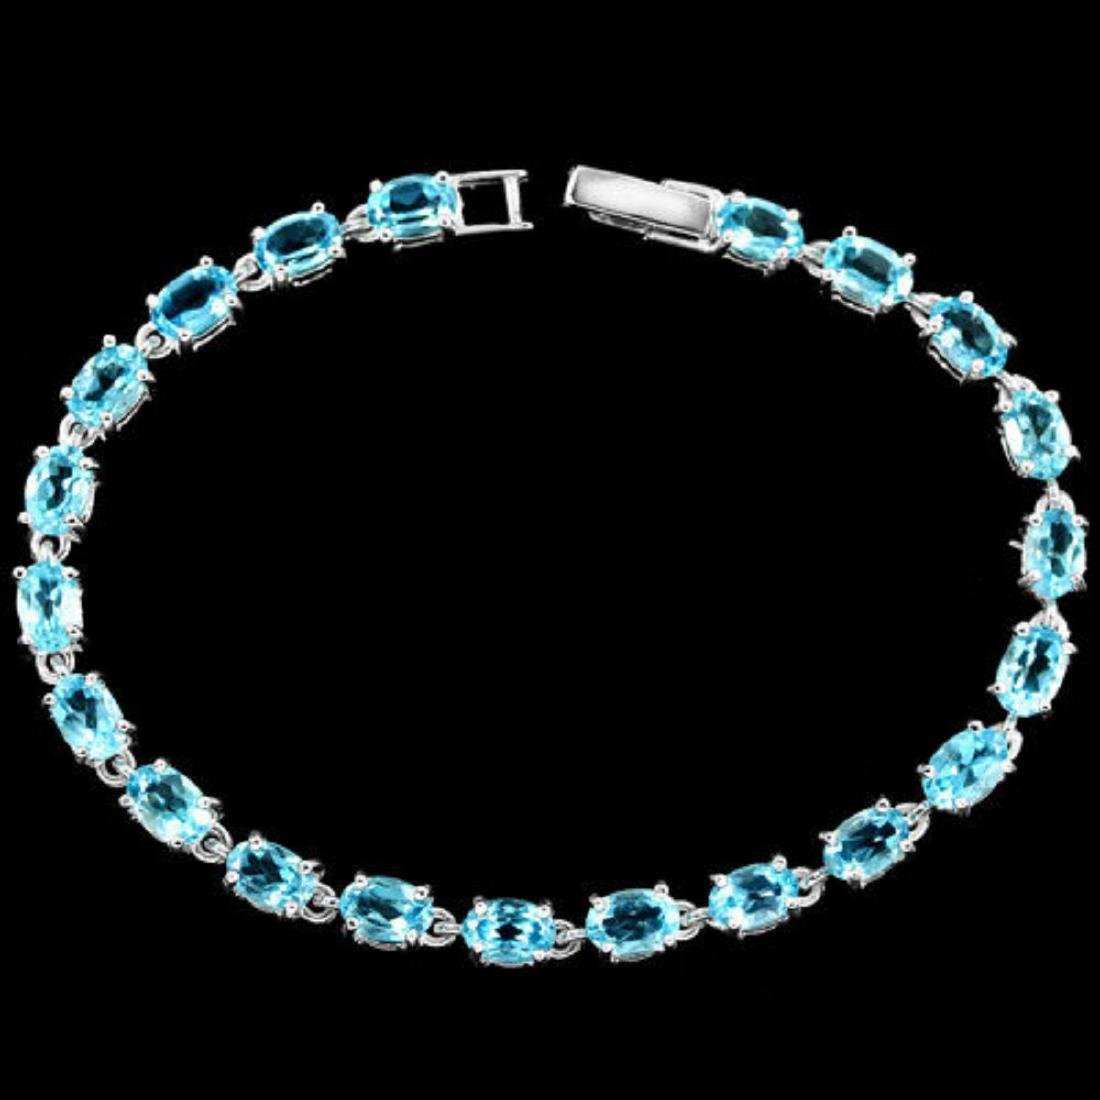 Natural SWISS BLUE TOPAZ Bracelet